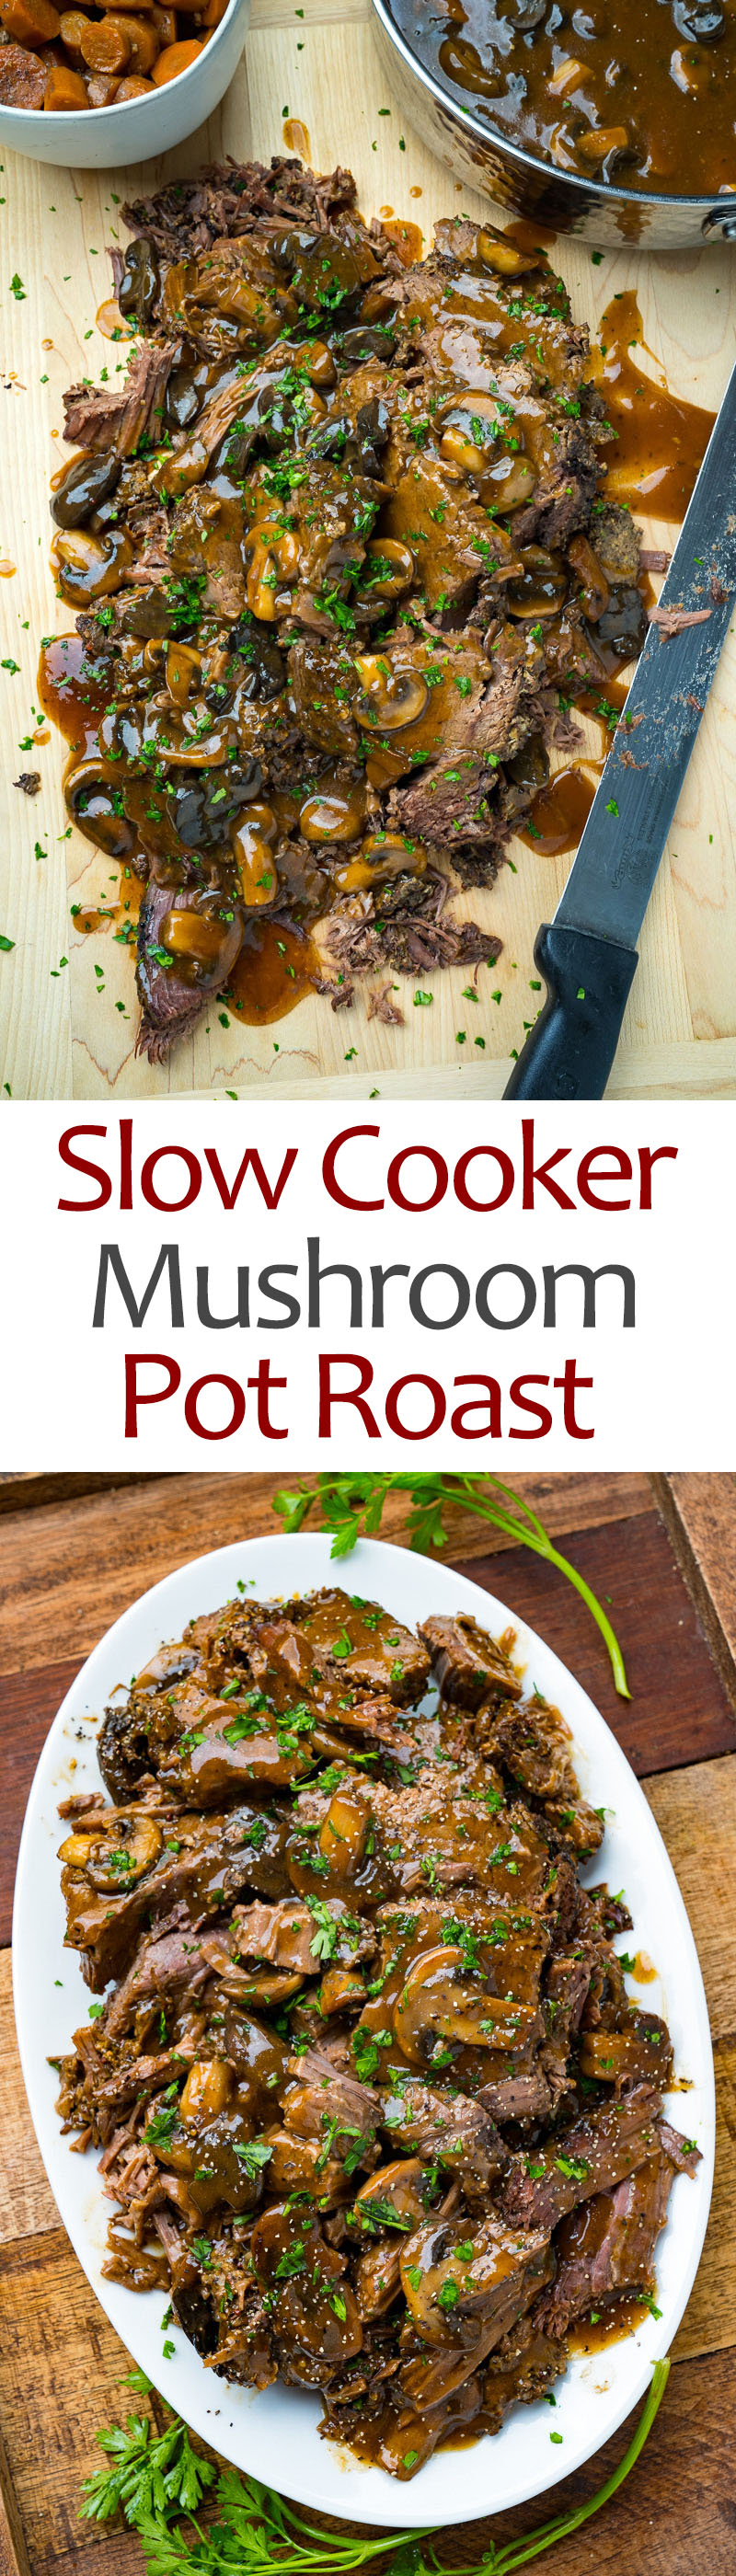 Slow Cooker Mushroom Pot Roast